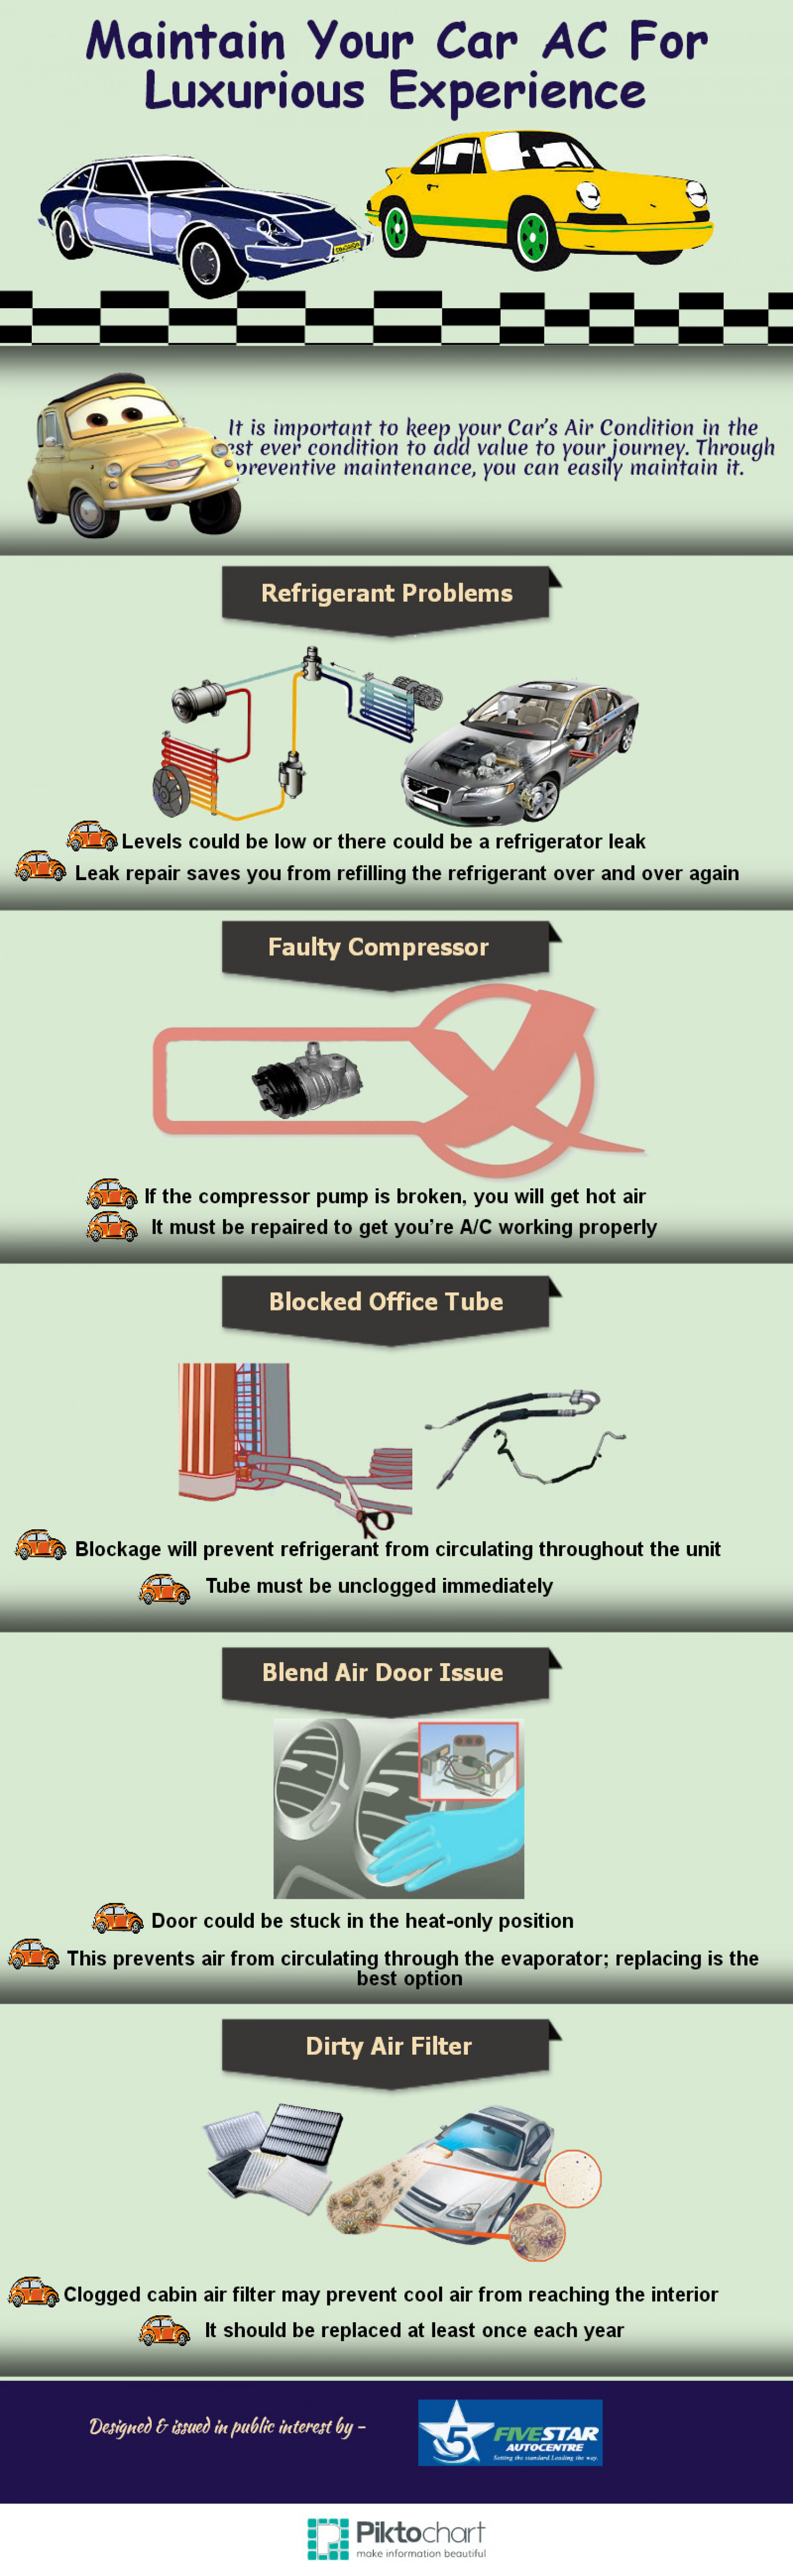 Maintain Your Car Ac For Luxurious Experience Infographic